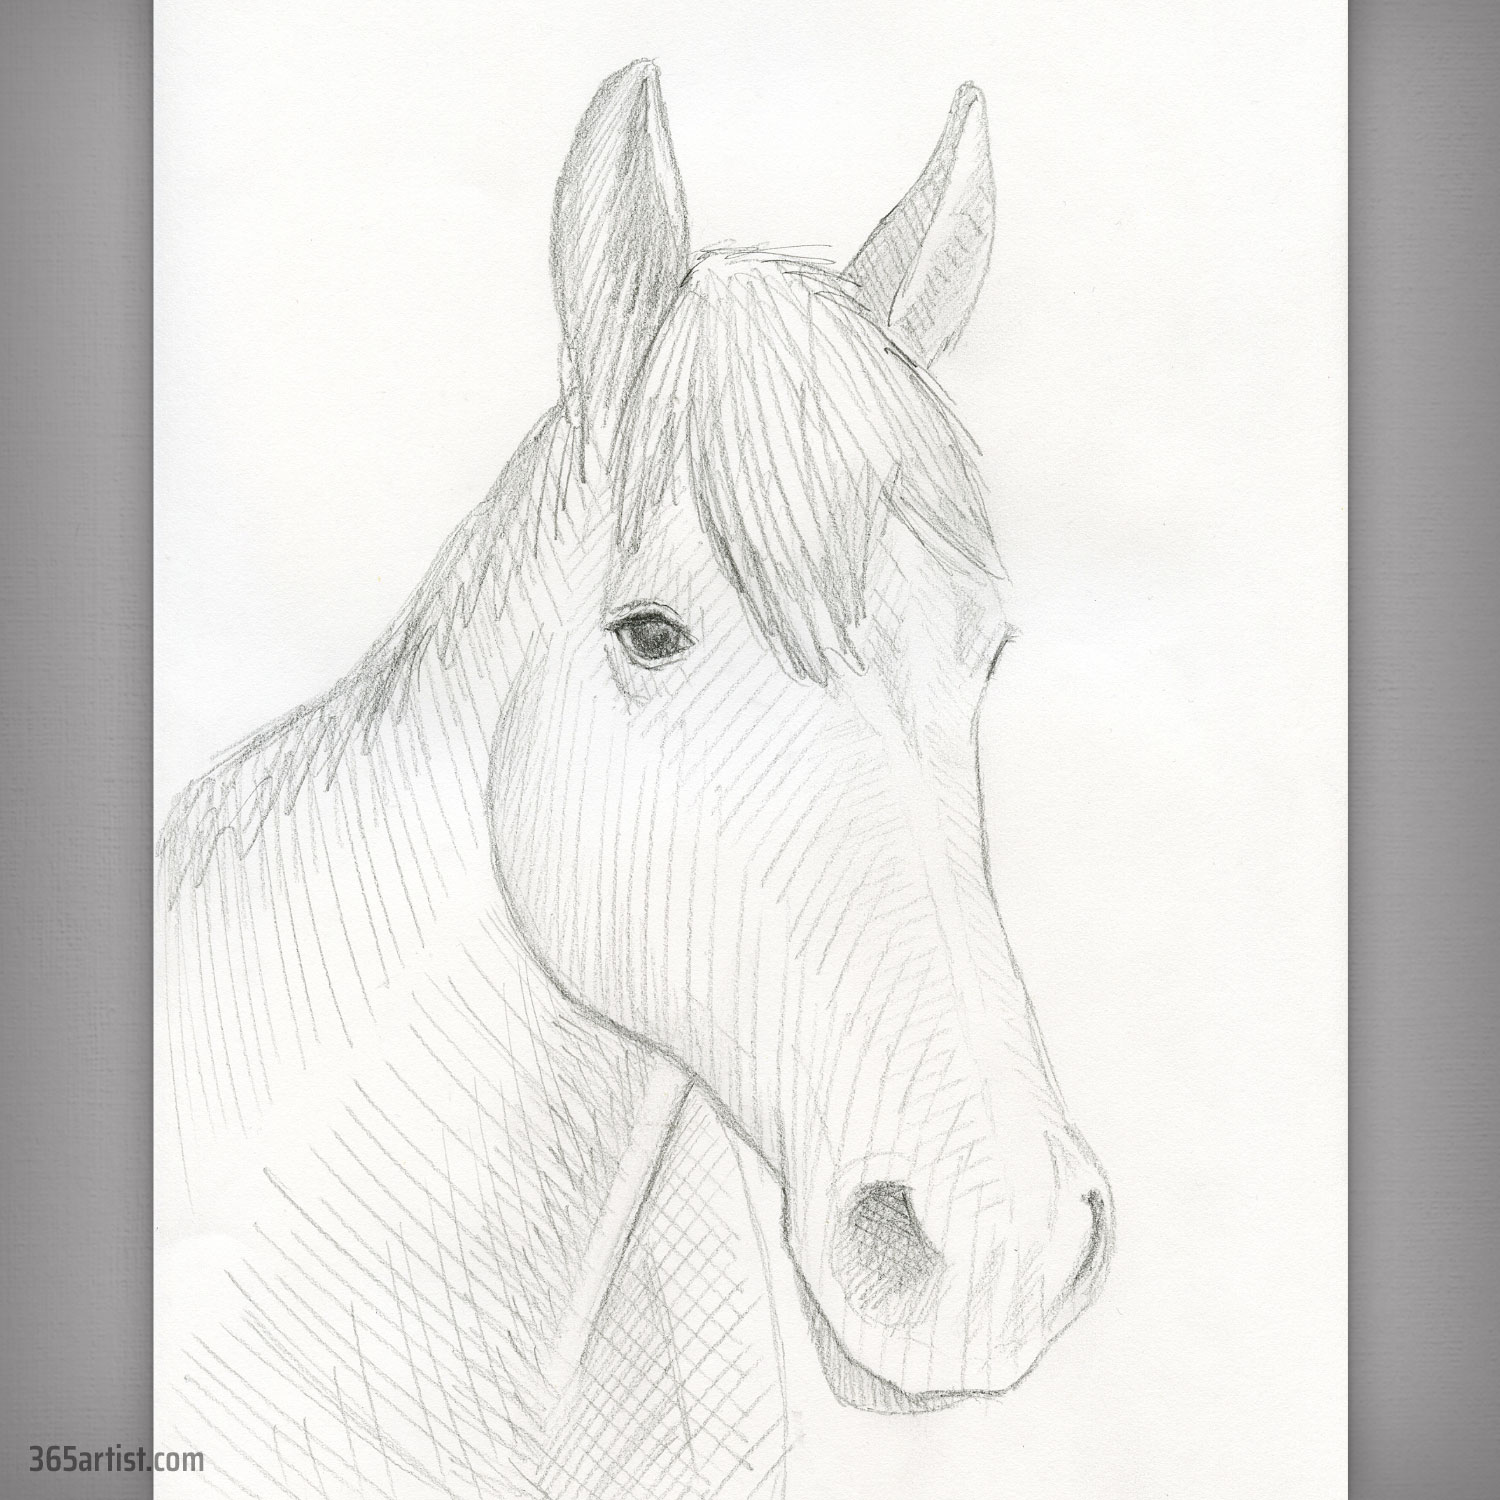 portrait drawing of a horse